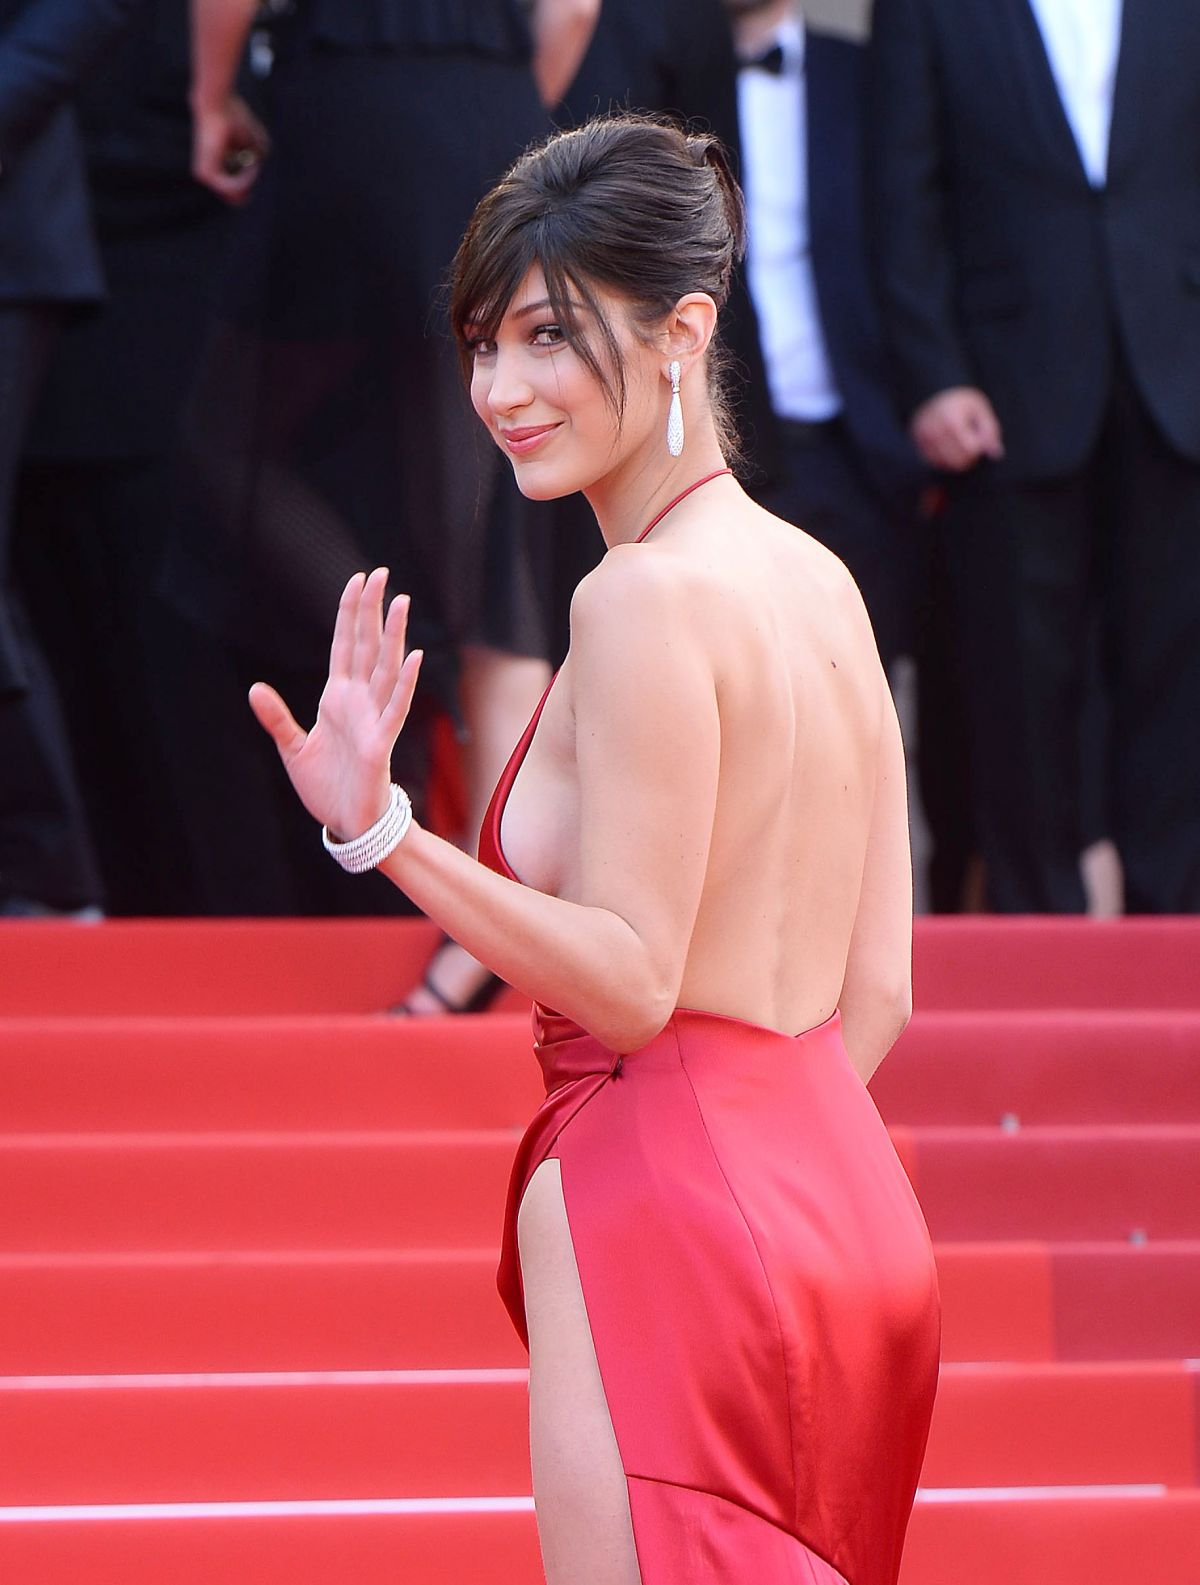 http-forum.ns4w.org-showthread.php-570203-bella-hadid-the-unknown-girl-premiere-at-69th-annual-cannes-film-festival-05-18-16-adds-s-08ce82a2f025b7305318944fd6bd9518_34